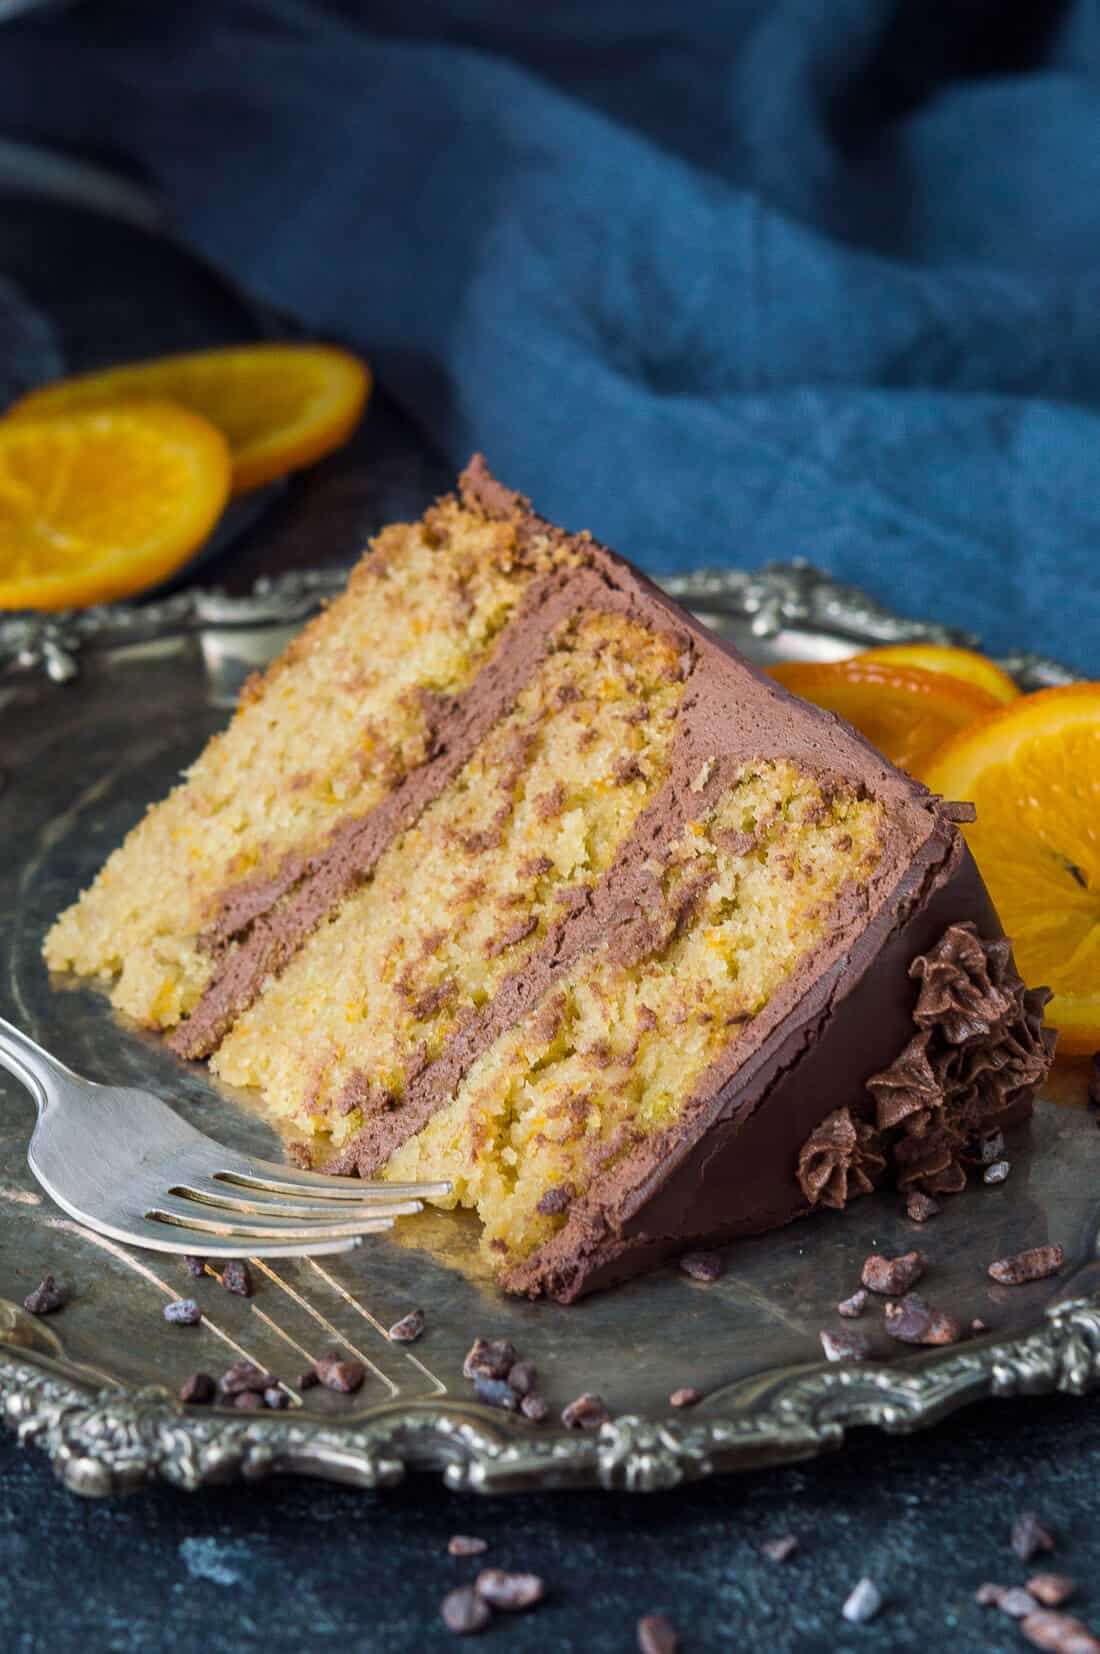 A slice of vegan orange and almond cake with vegan chocolate orange buttercream and candied oranges on a pewter plate.